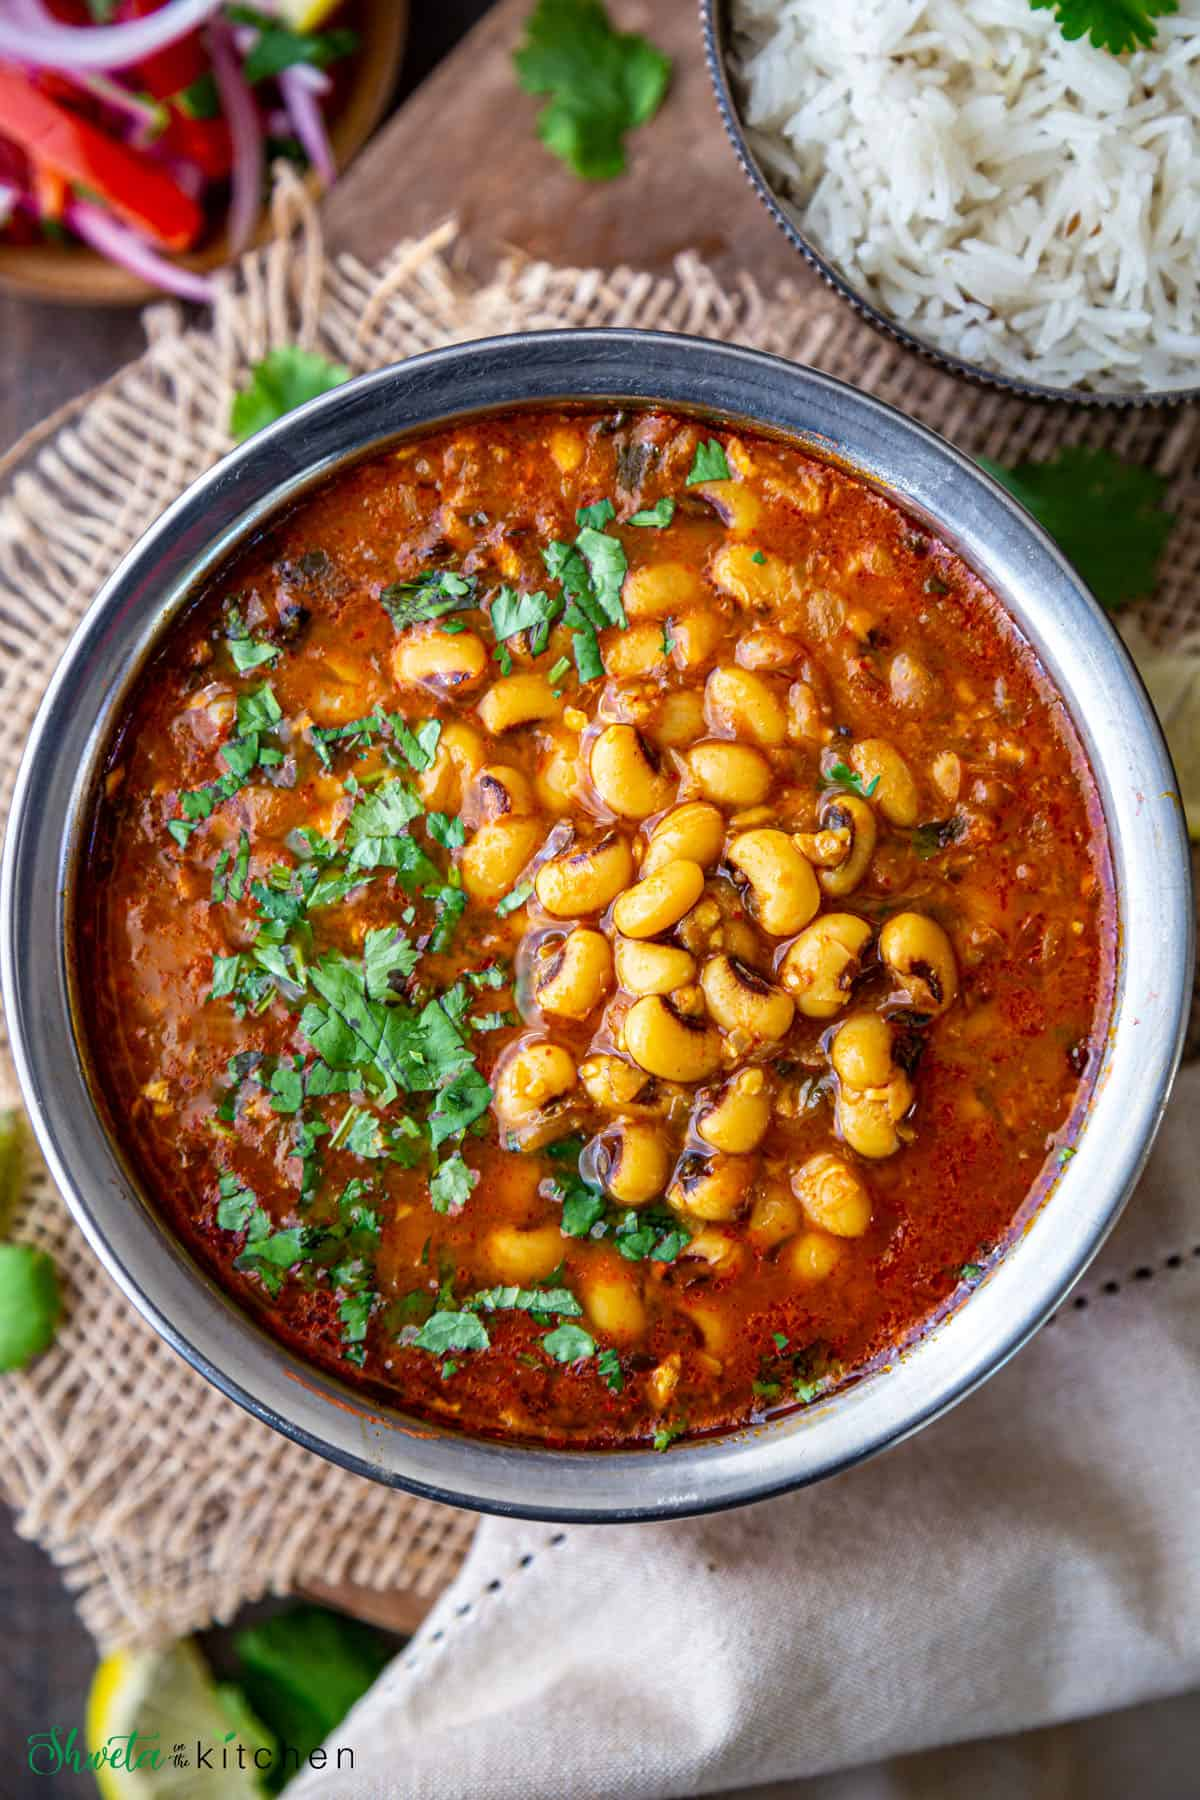 Lobia (black eyed peas) curry in a bowl on a wooden surface with rice and salad on the side